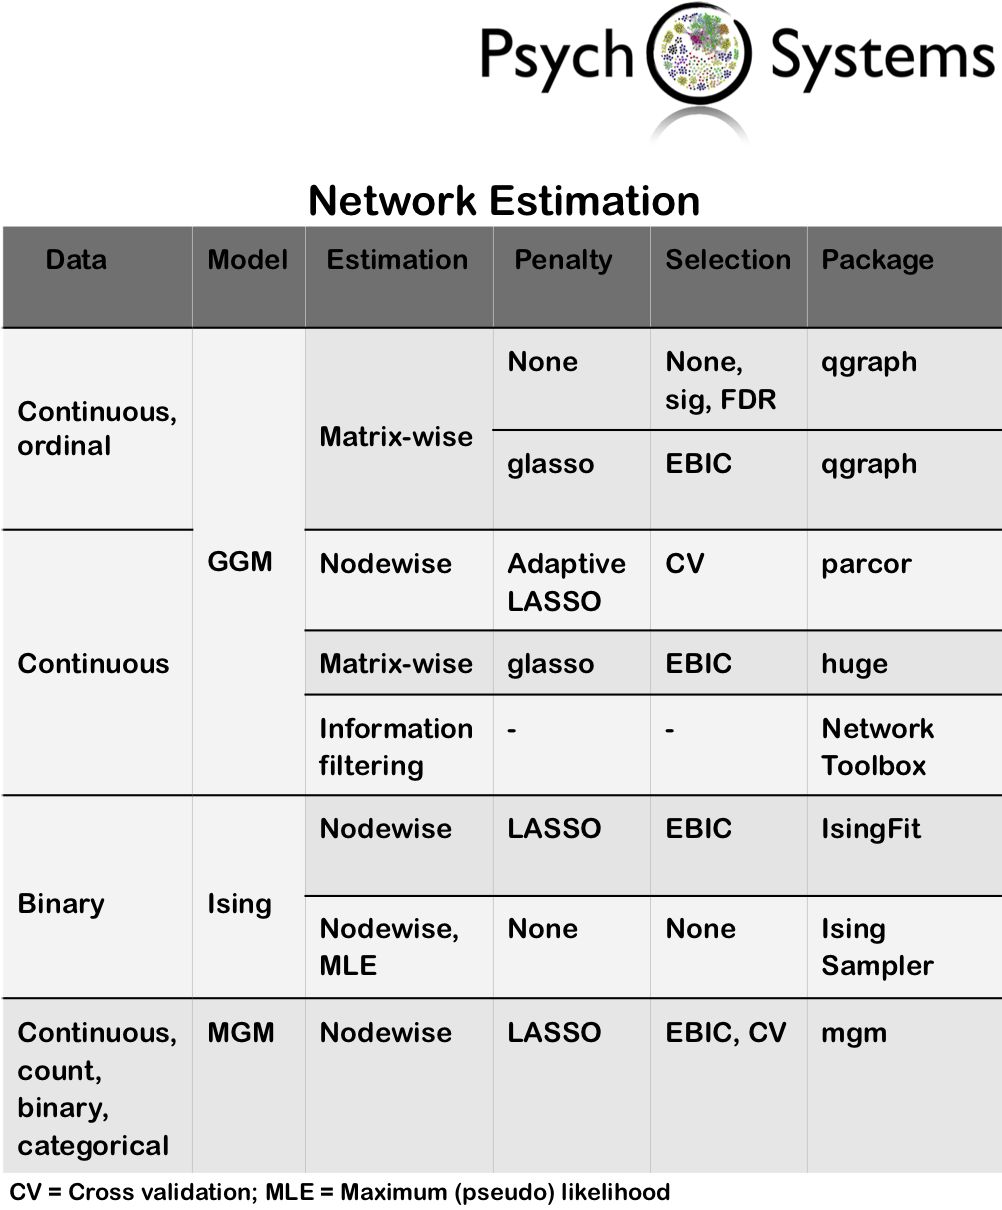 Network table